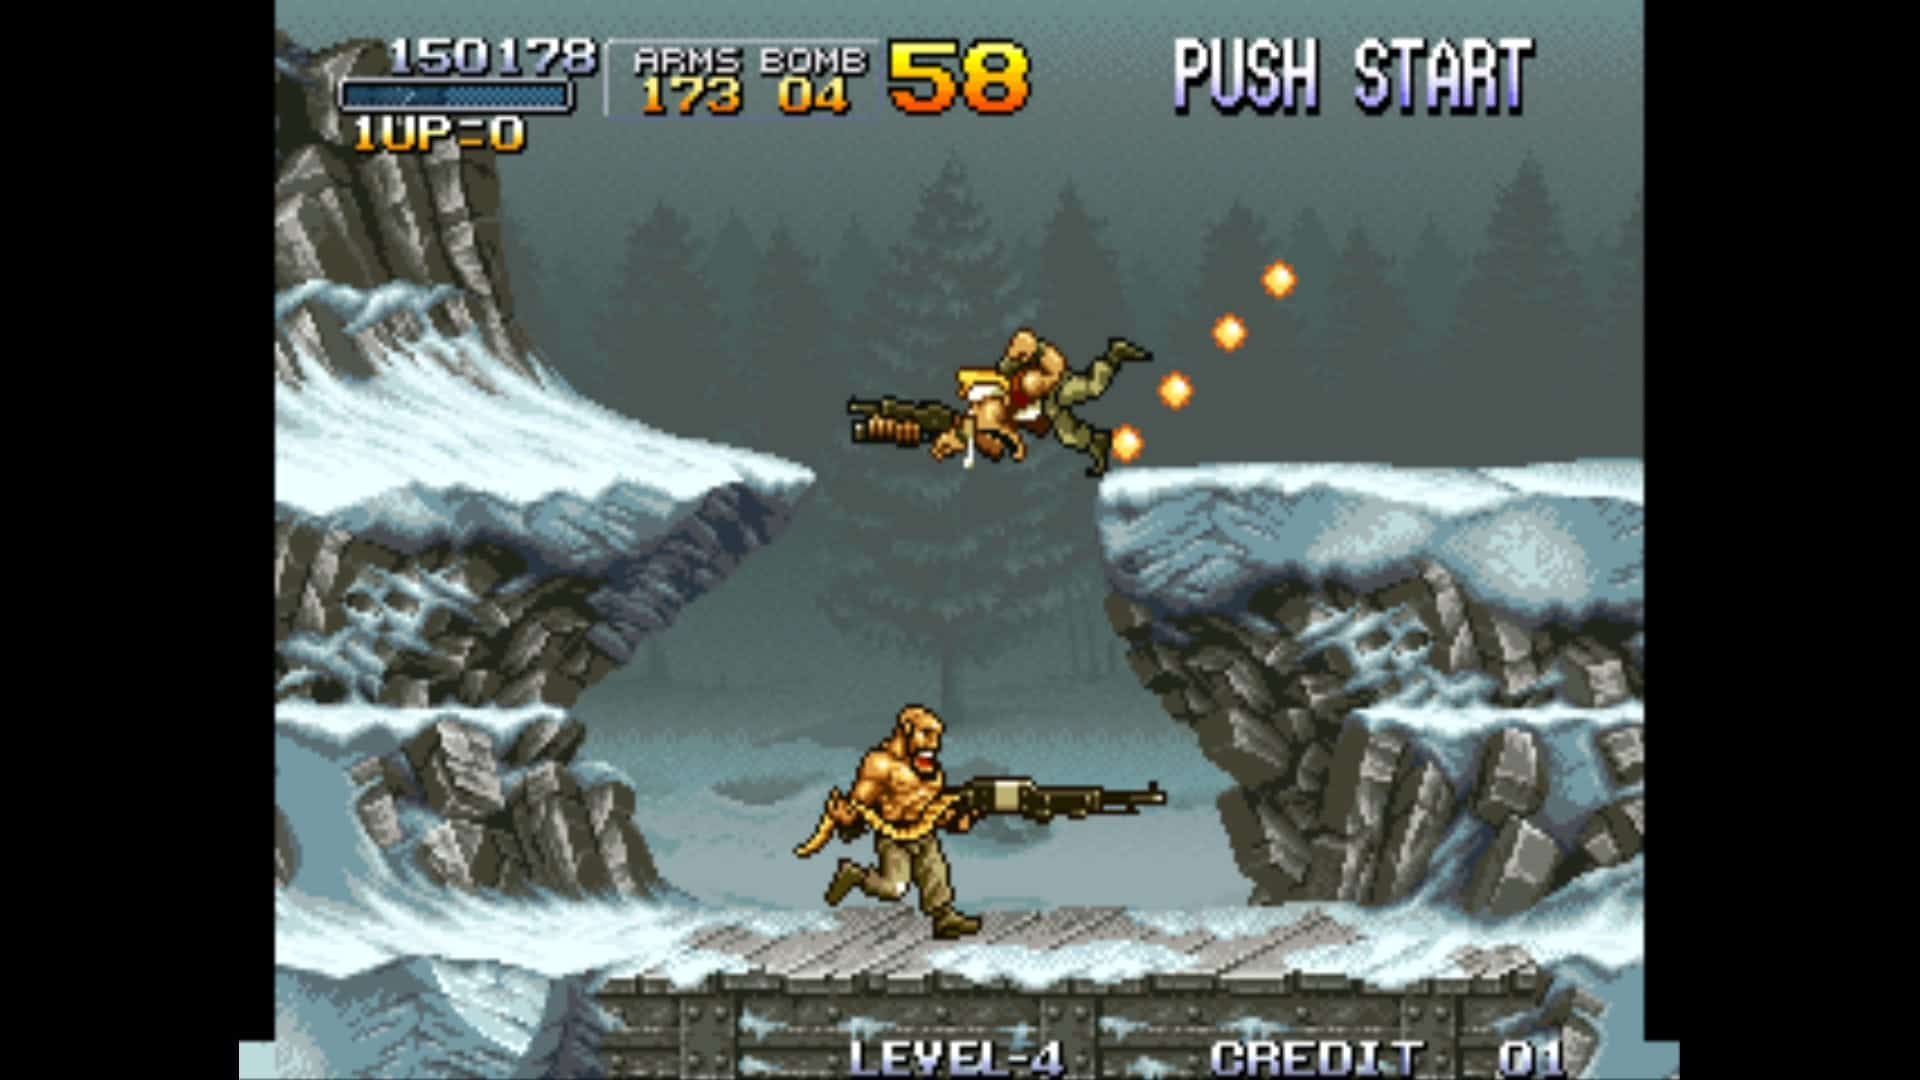 Gameplay Screenshot from Metal Slug 1 for MAME